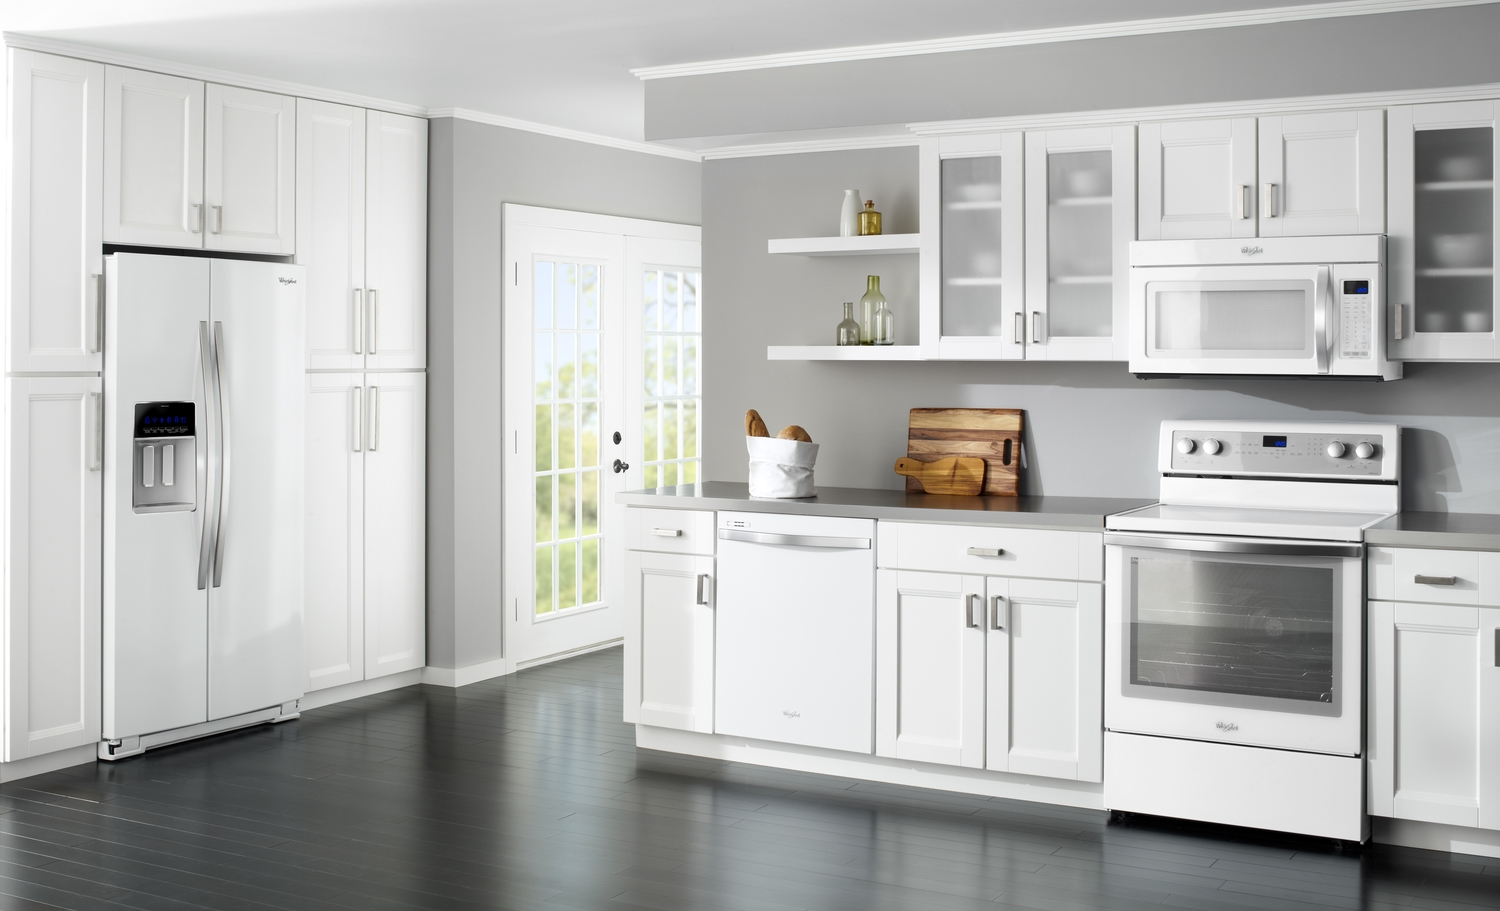 kitchen cabinets mn mats amazon discount woodbury wholesale design white stainless appliances 0zddnvcf jpg